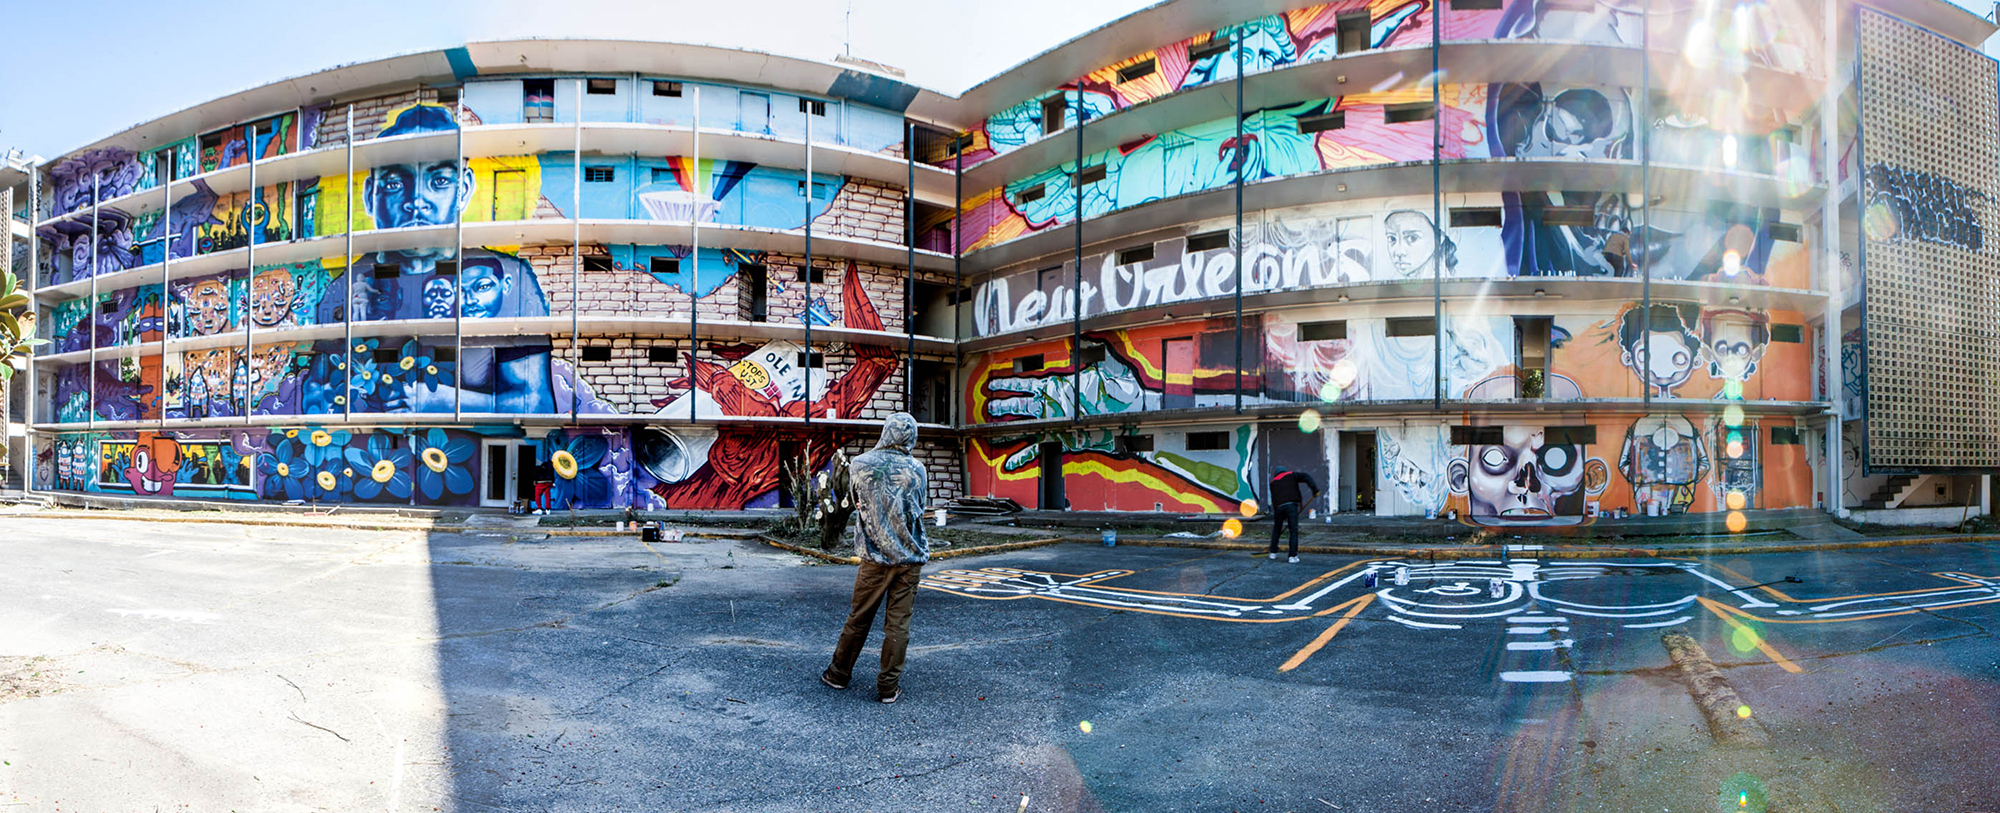 Large mural on building